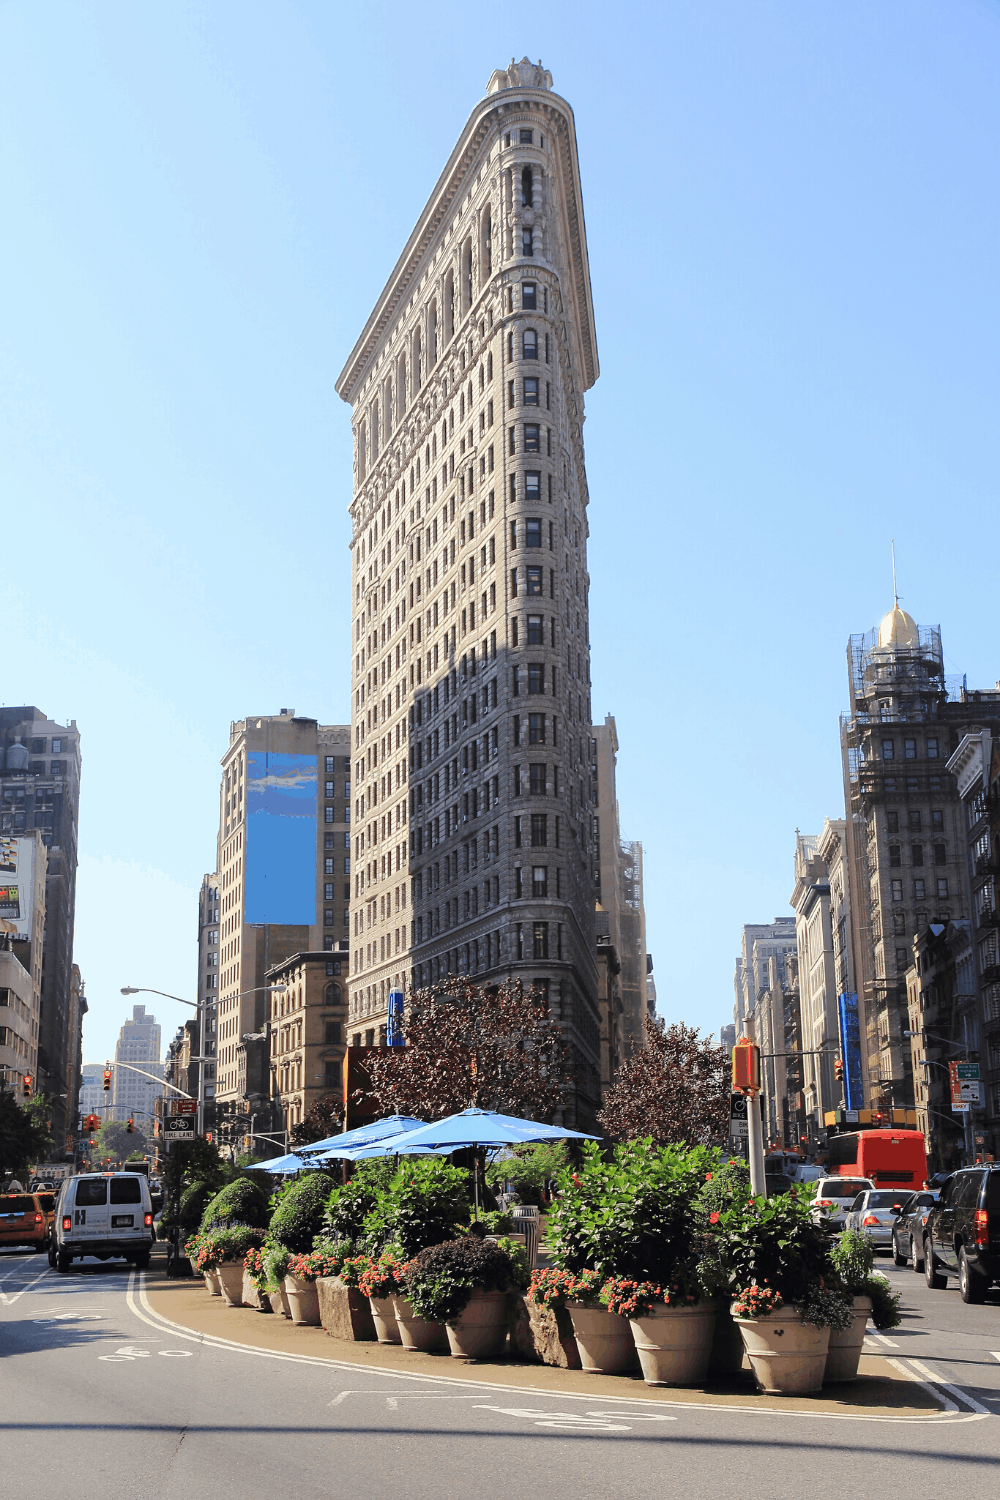 The unique, triangle shape of New York's Flatiron building.